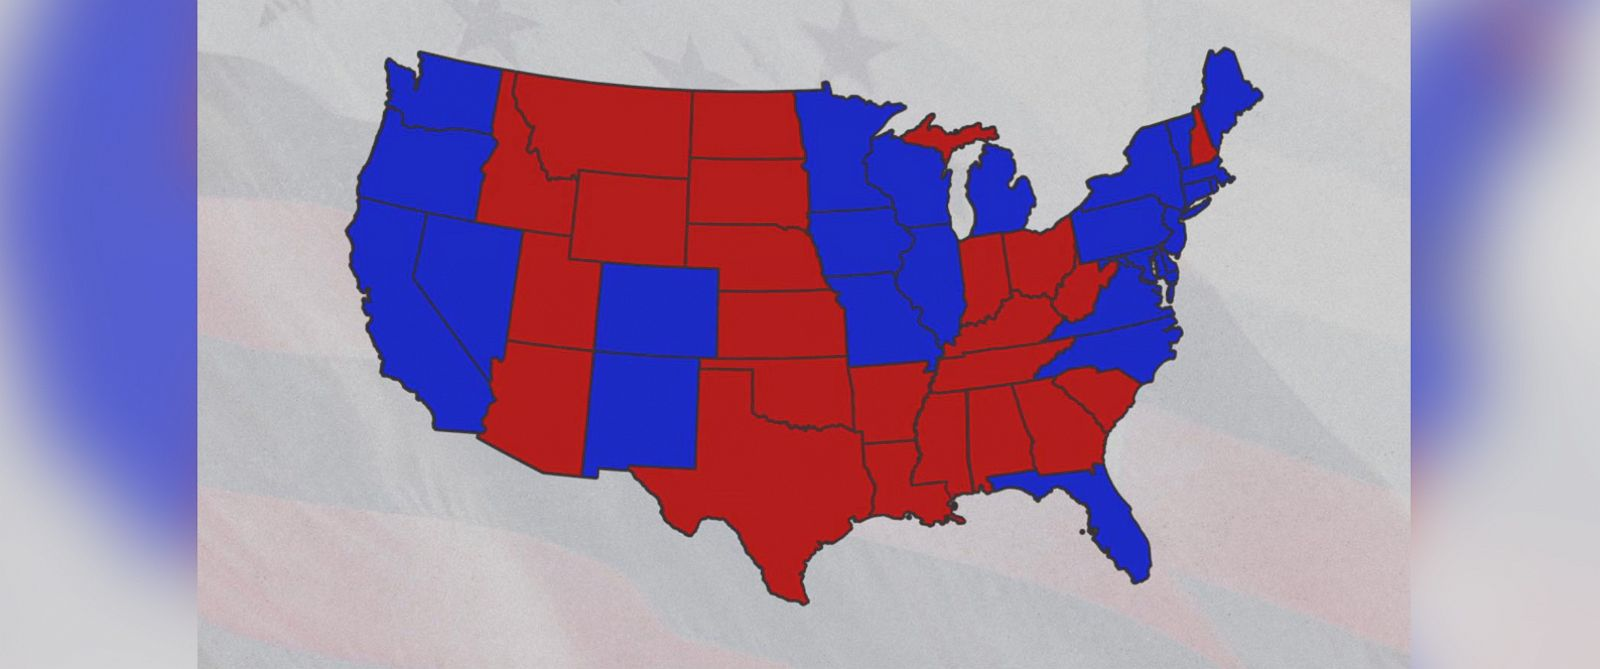 Blue And Red Politics 19